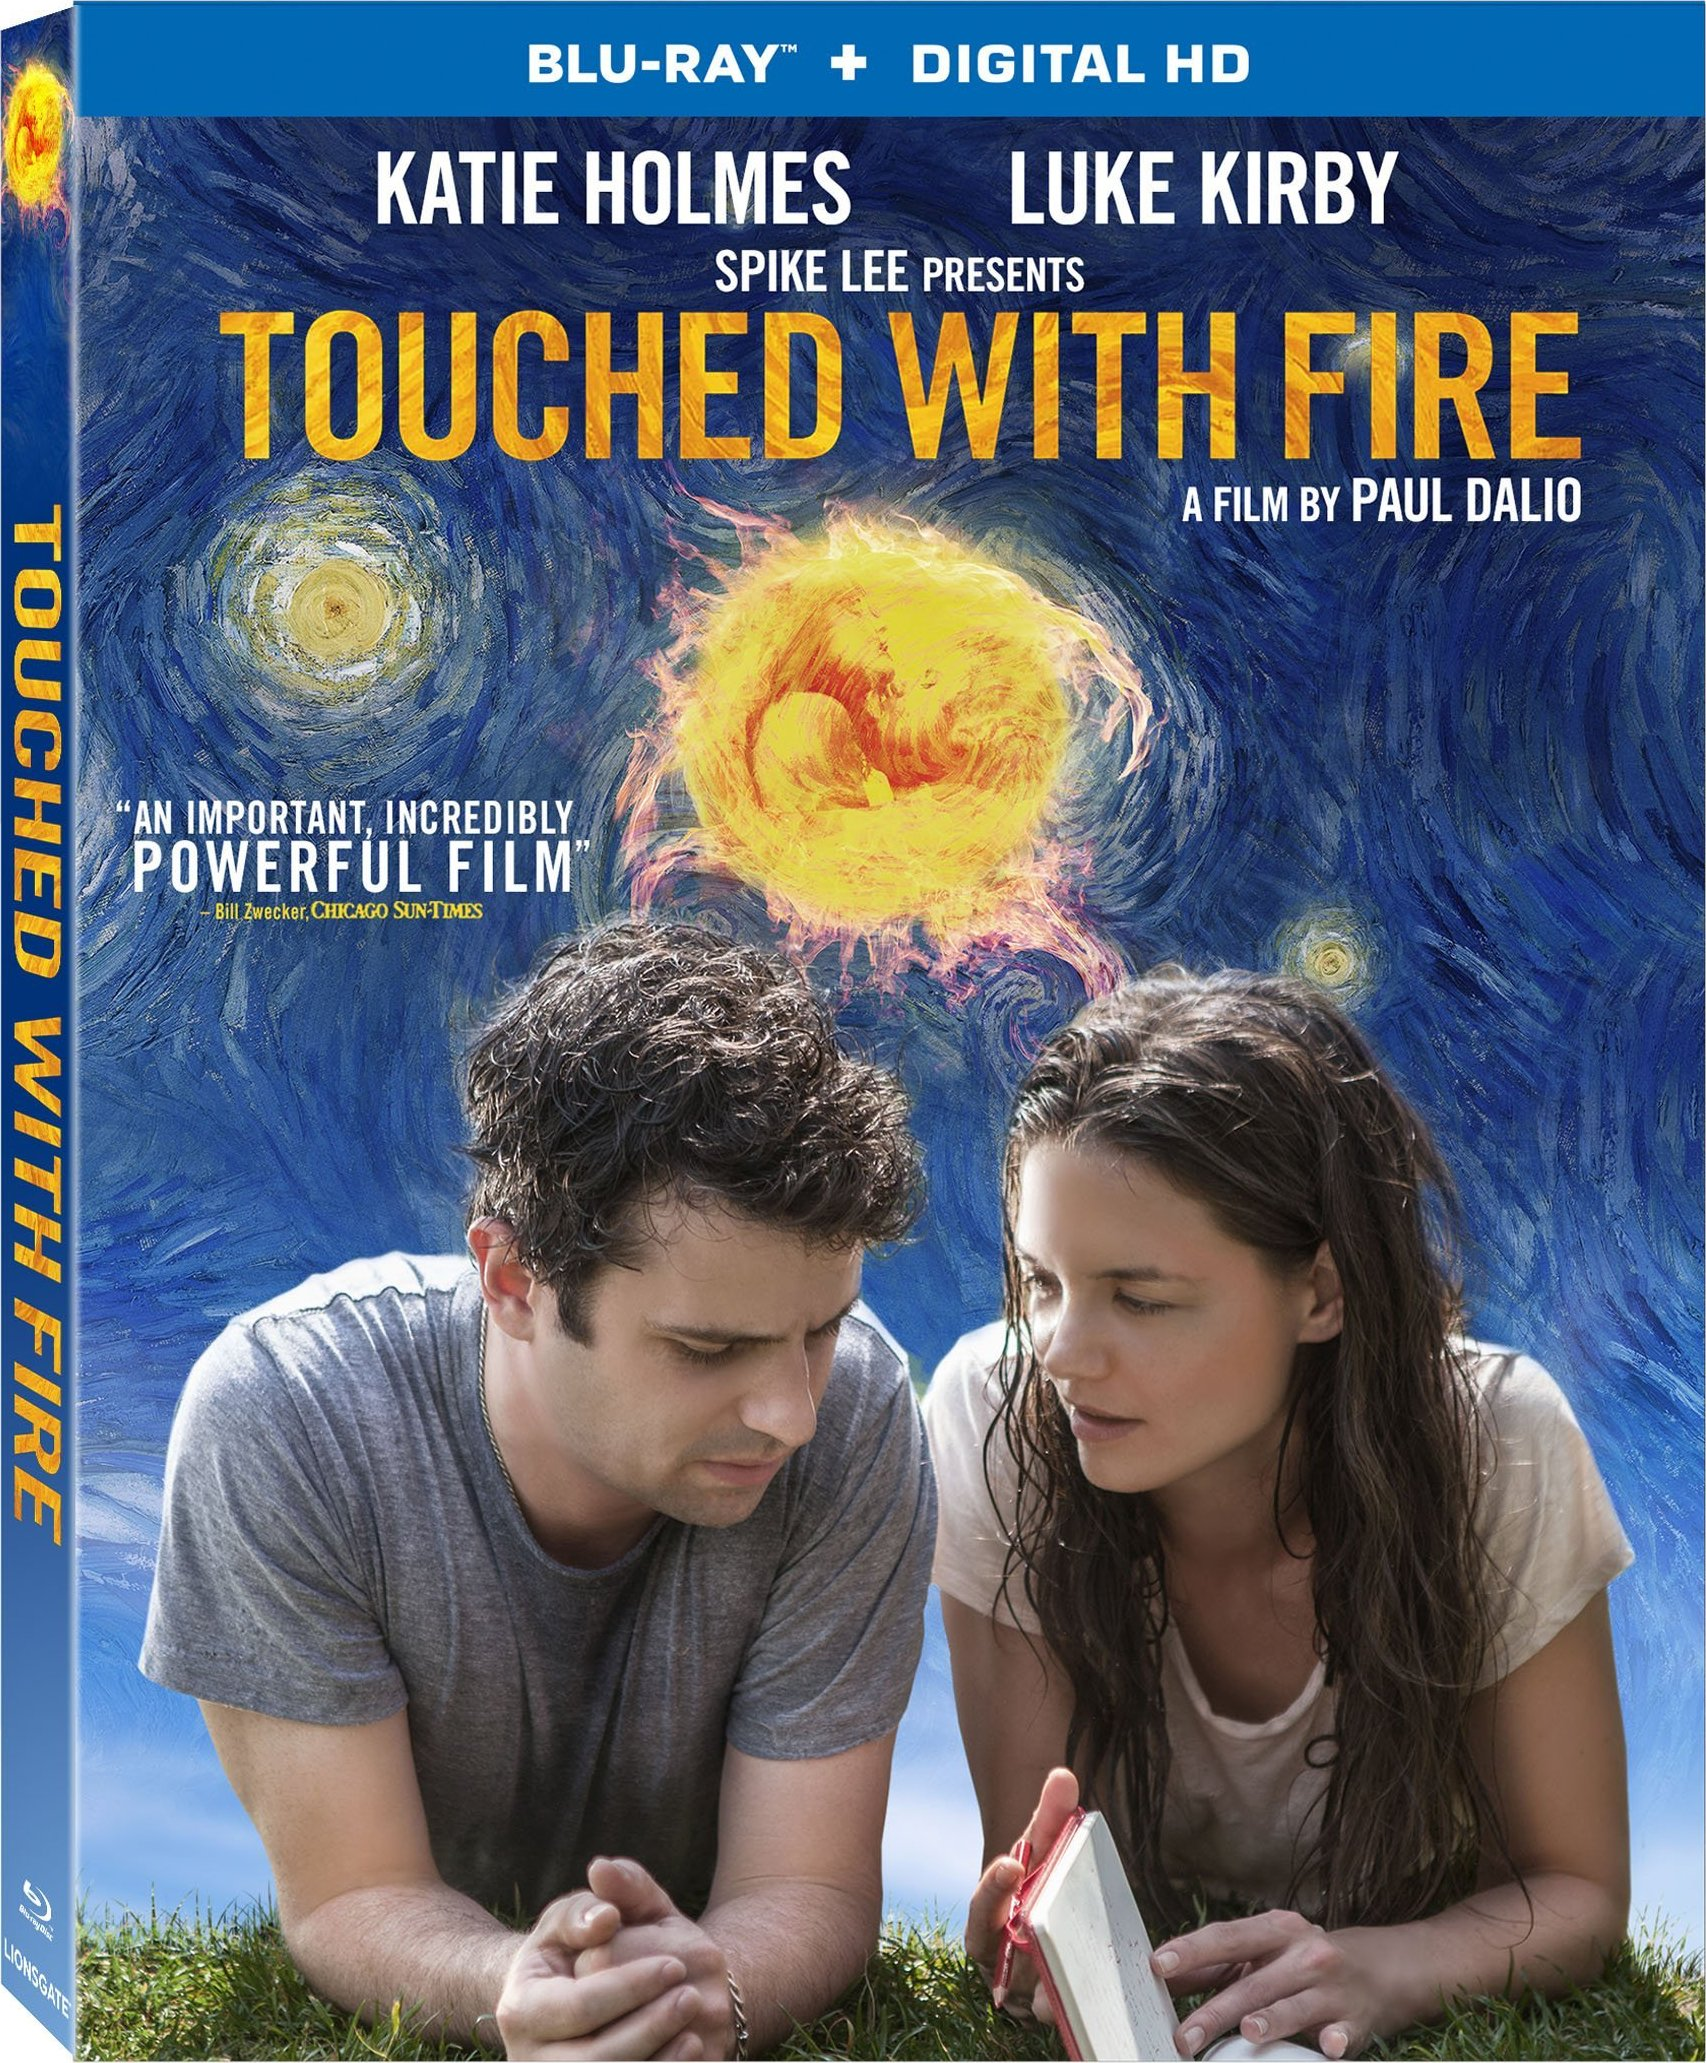 Touched With Fire Blu-ray Review